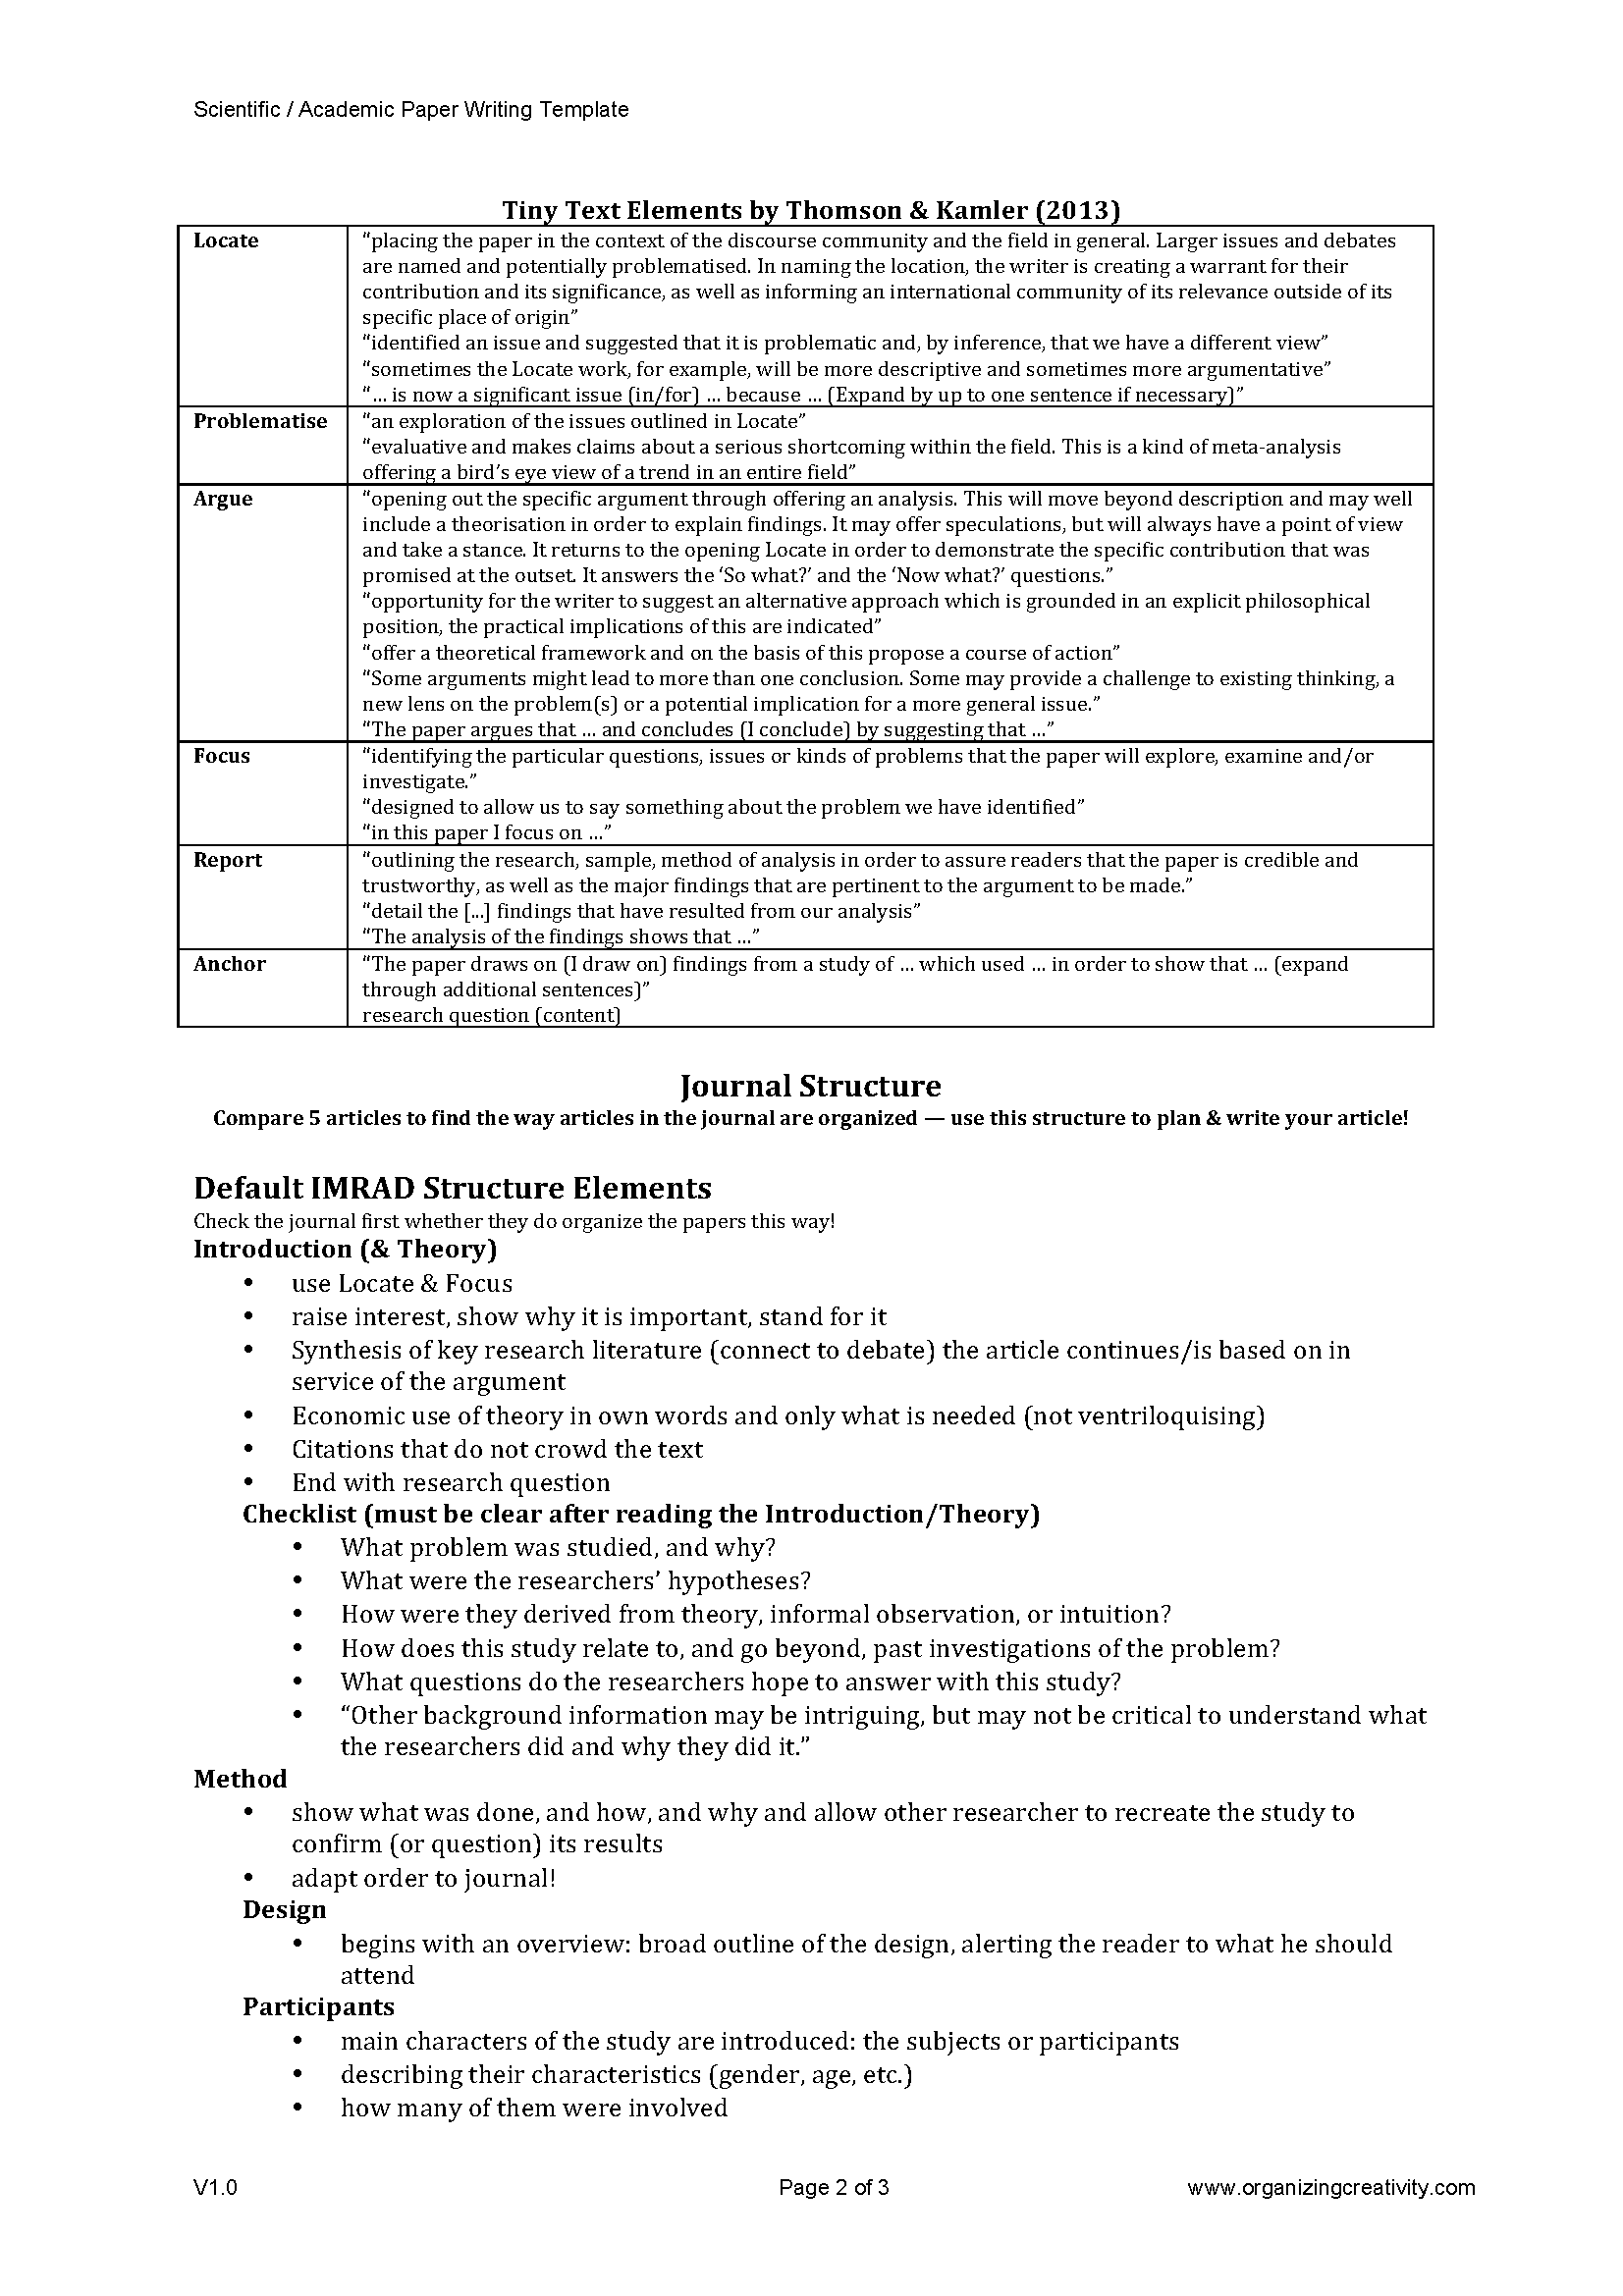 Scientific Academic Paper Writing Template – Scientific Report